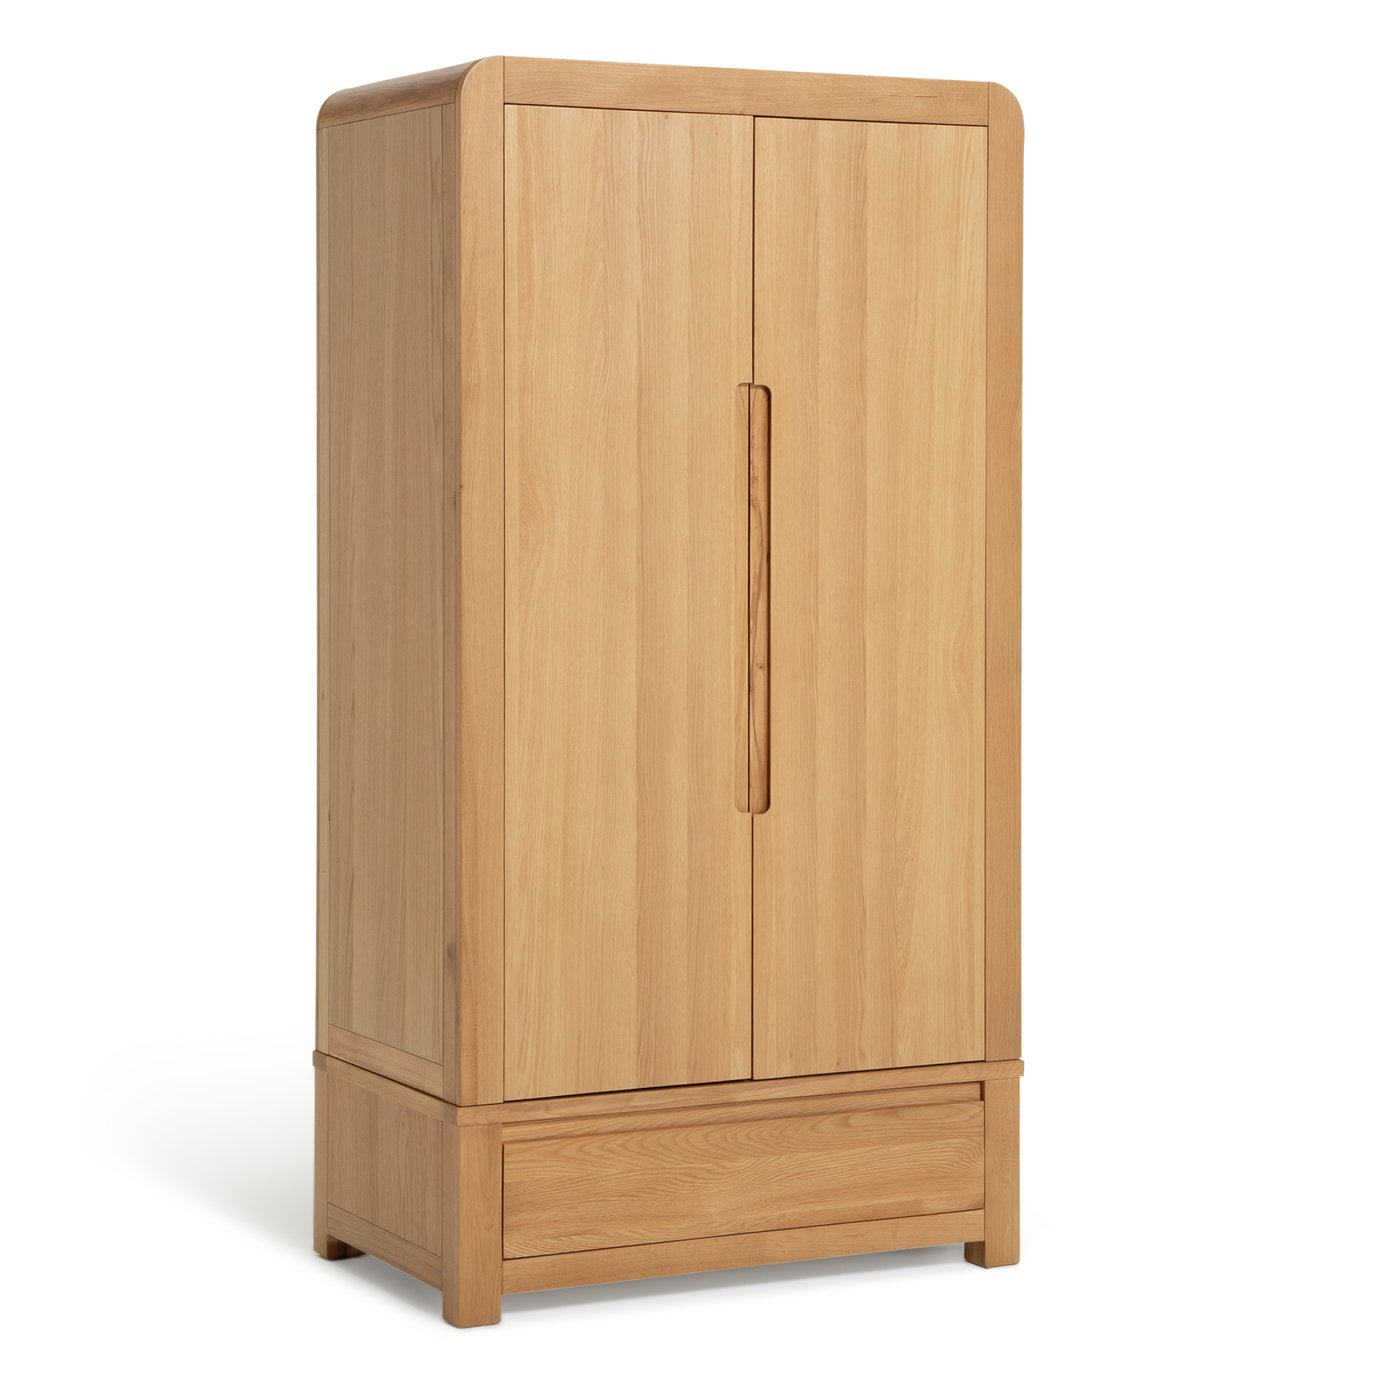 Argos Home Novara 2 Door Wardrobe - Oak & Oak Veneer